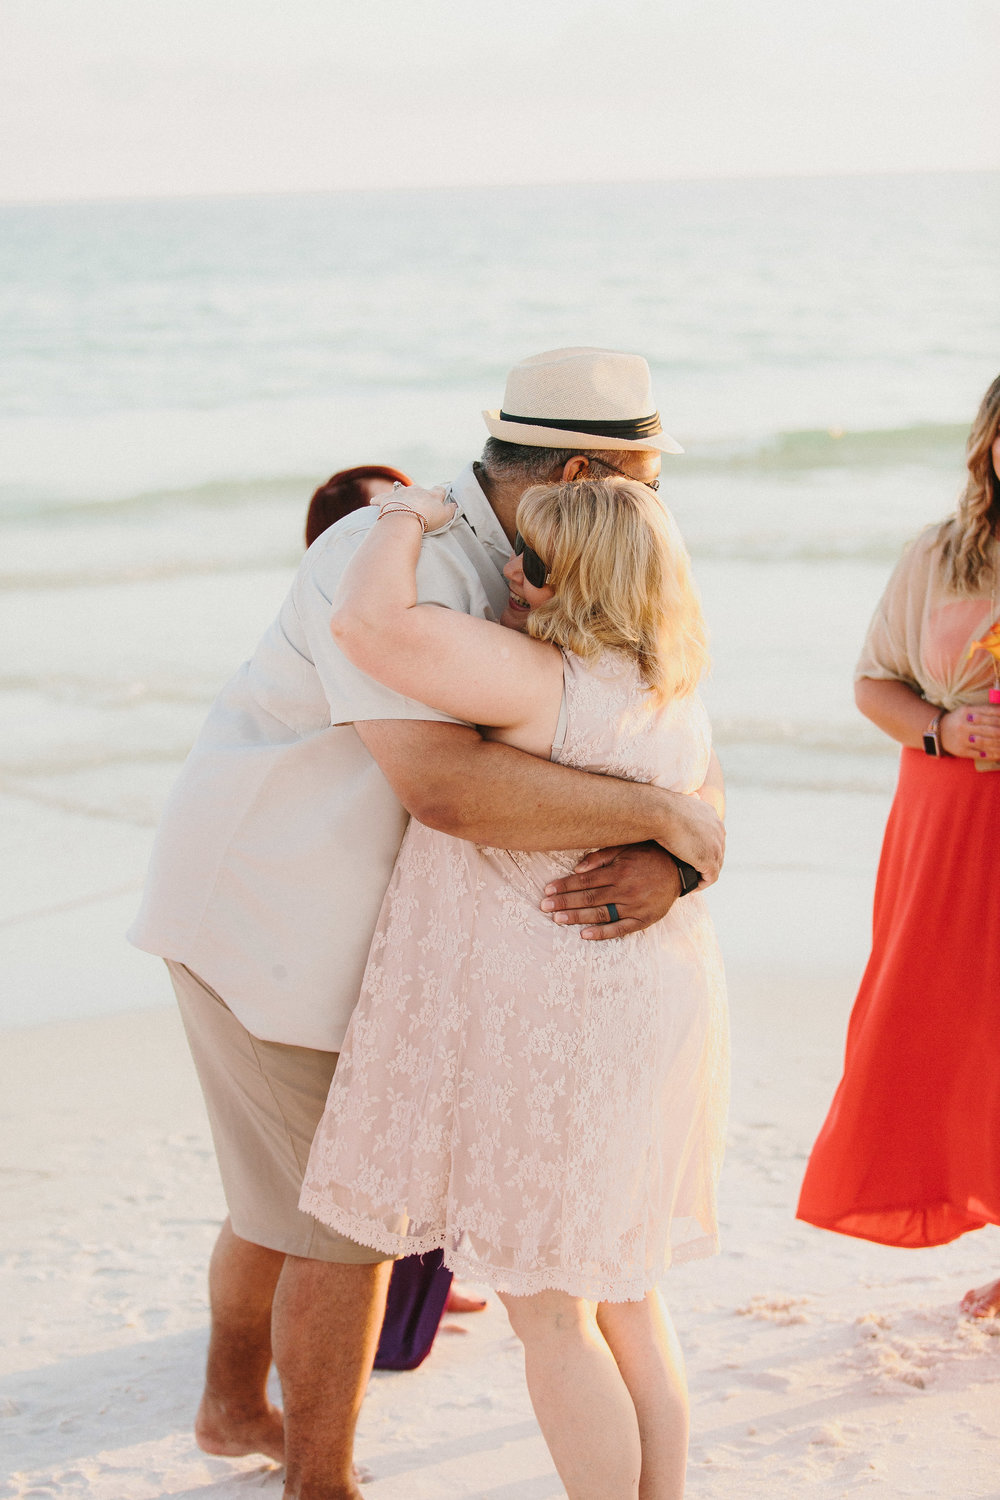 destin_sunset_beach_elopement_intimate_wedding_photographer_florida_documentary_1238.jpg